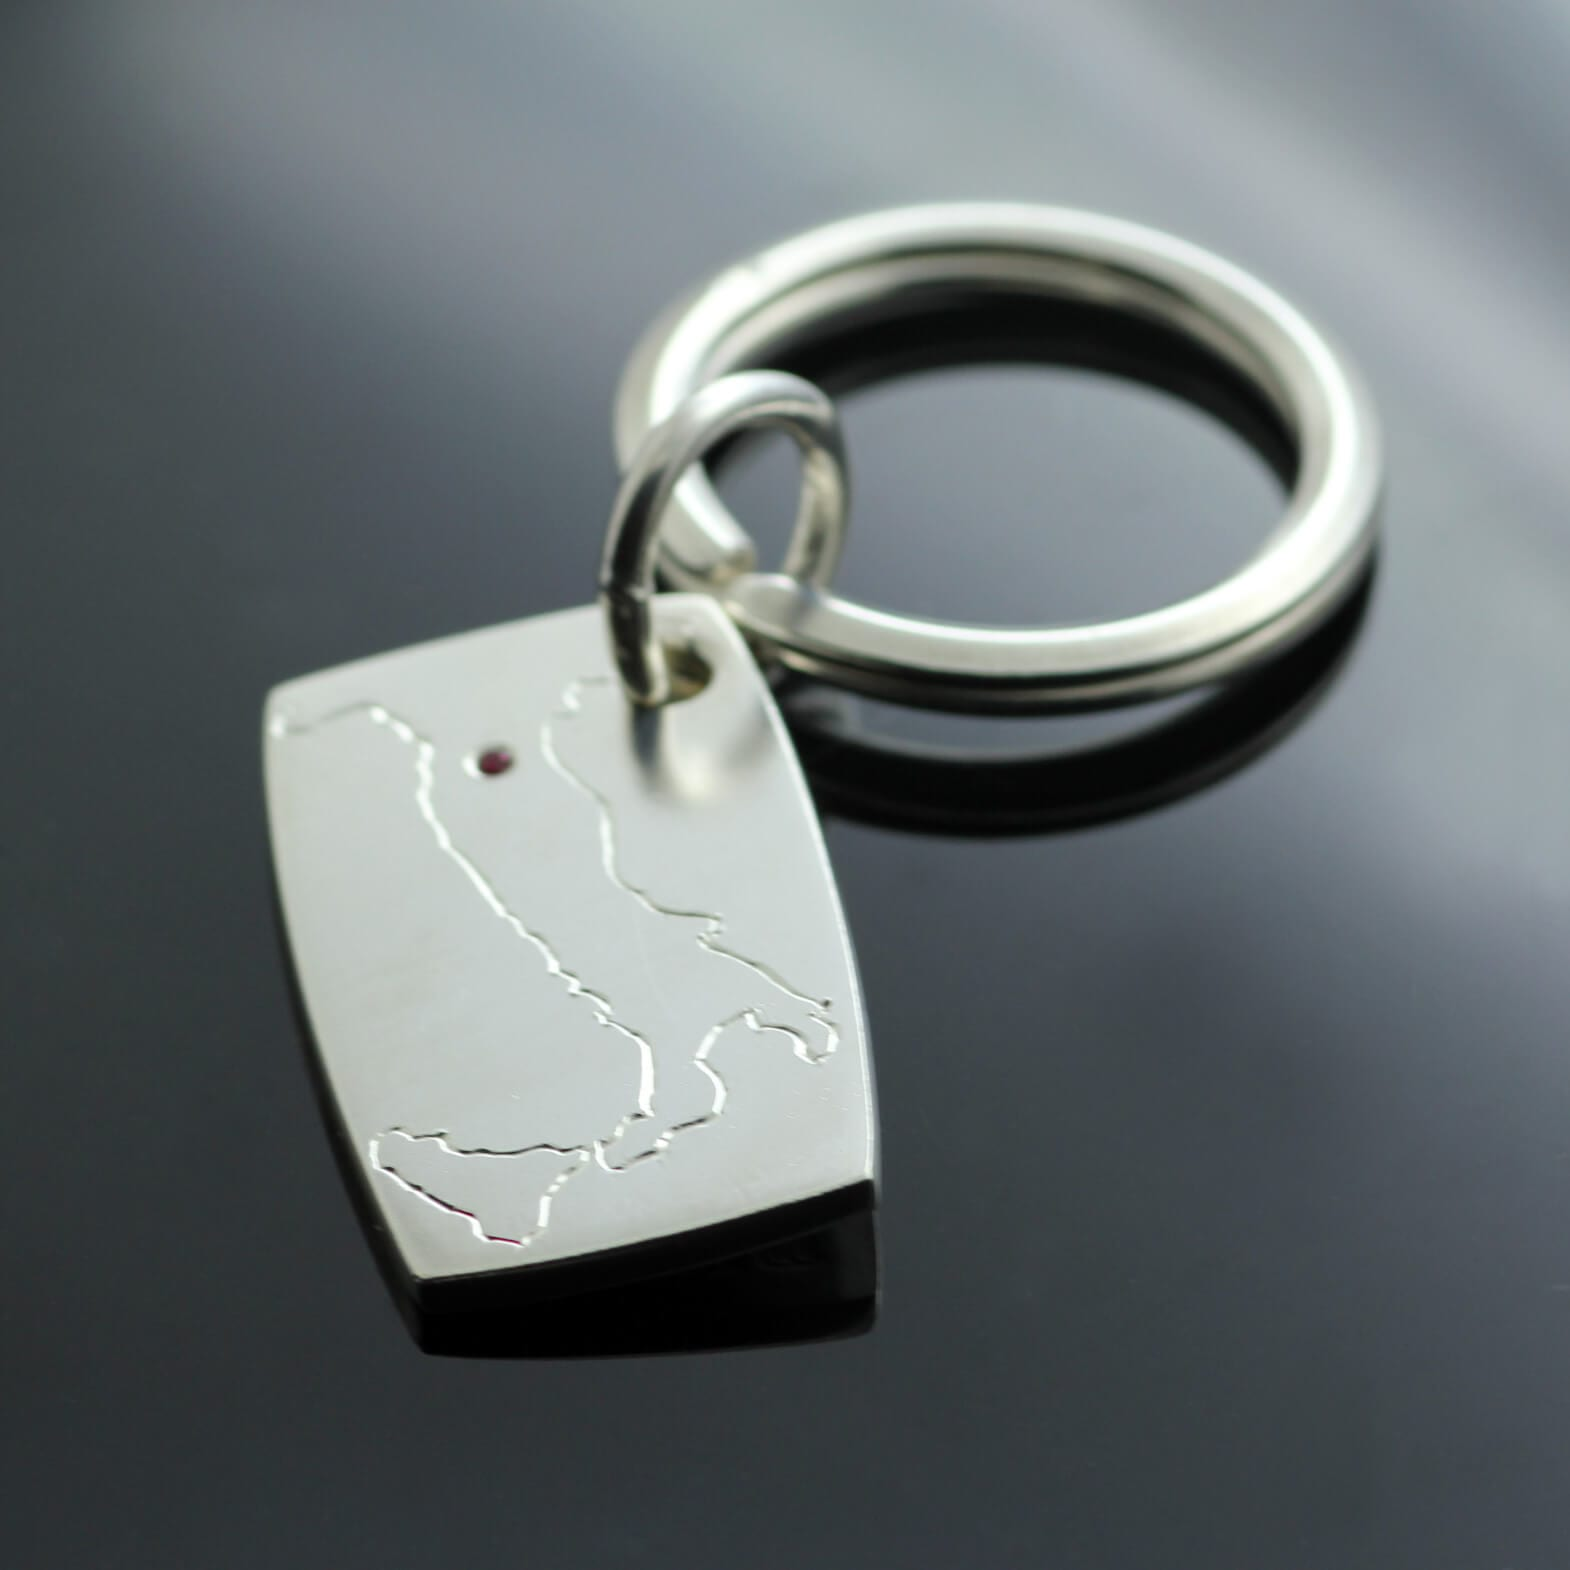 Handmade Silver keyring unique bespoke gifts by Julian Stephens